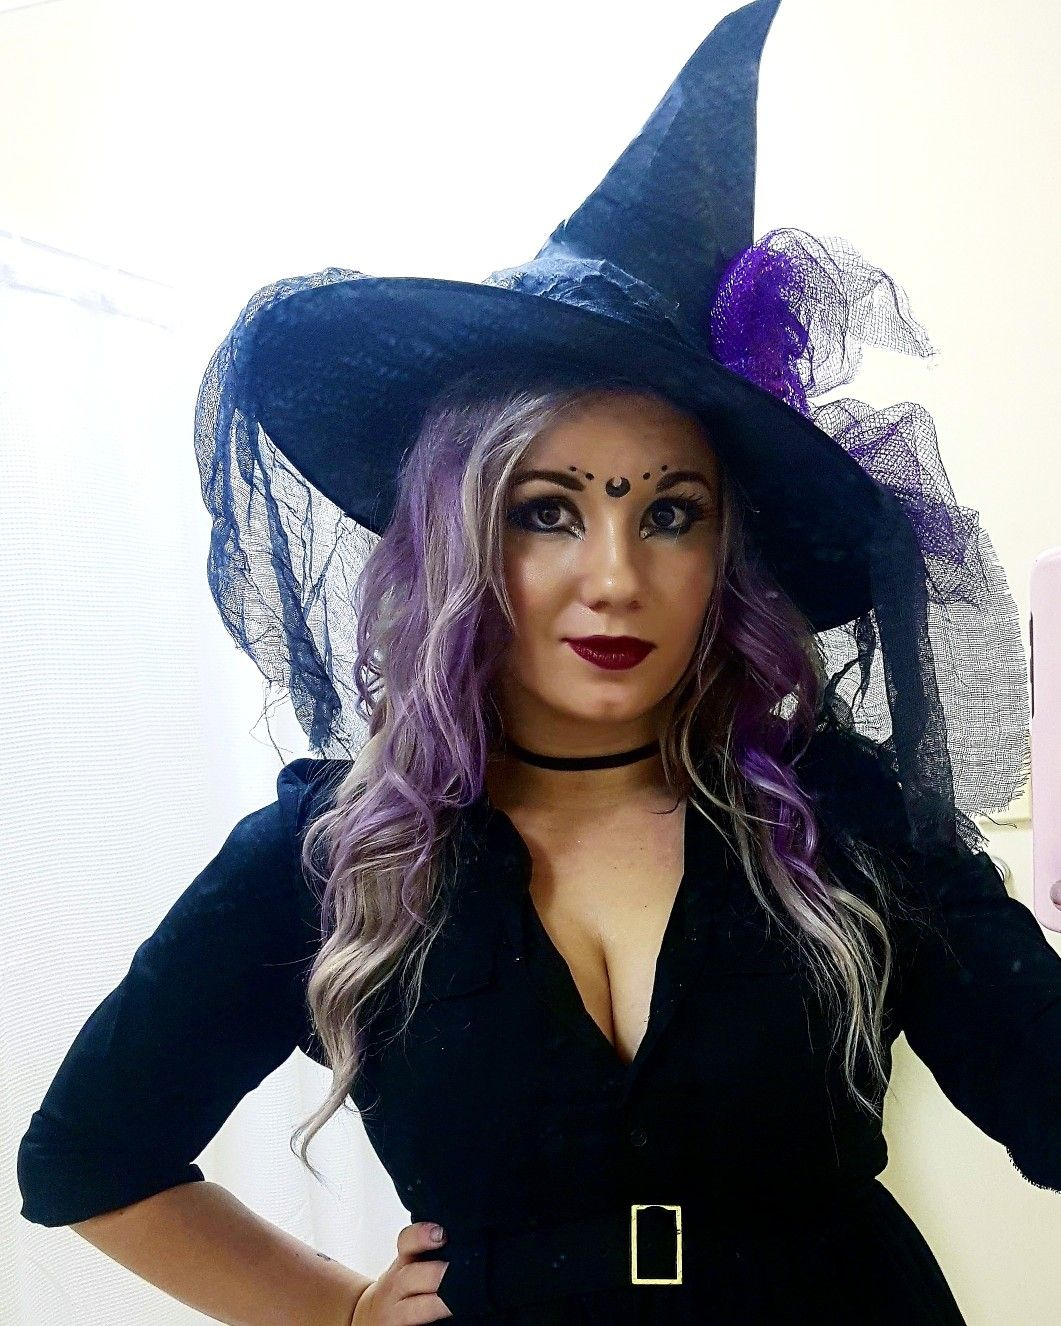 Witch Costume And Makeup For Halloween 2017 Purple Blonde Hair Purple Blonde Hair Blonde Blonde Hair